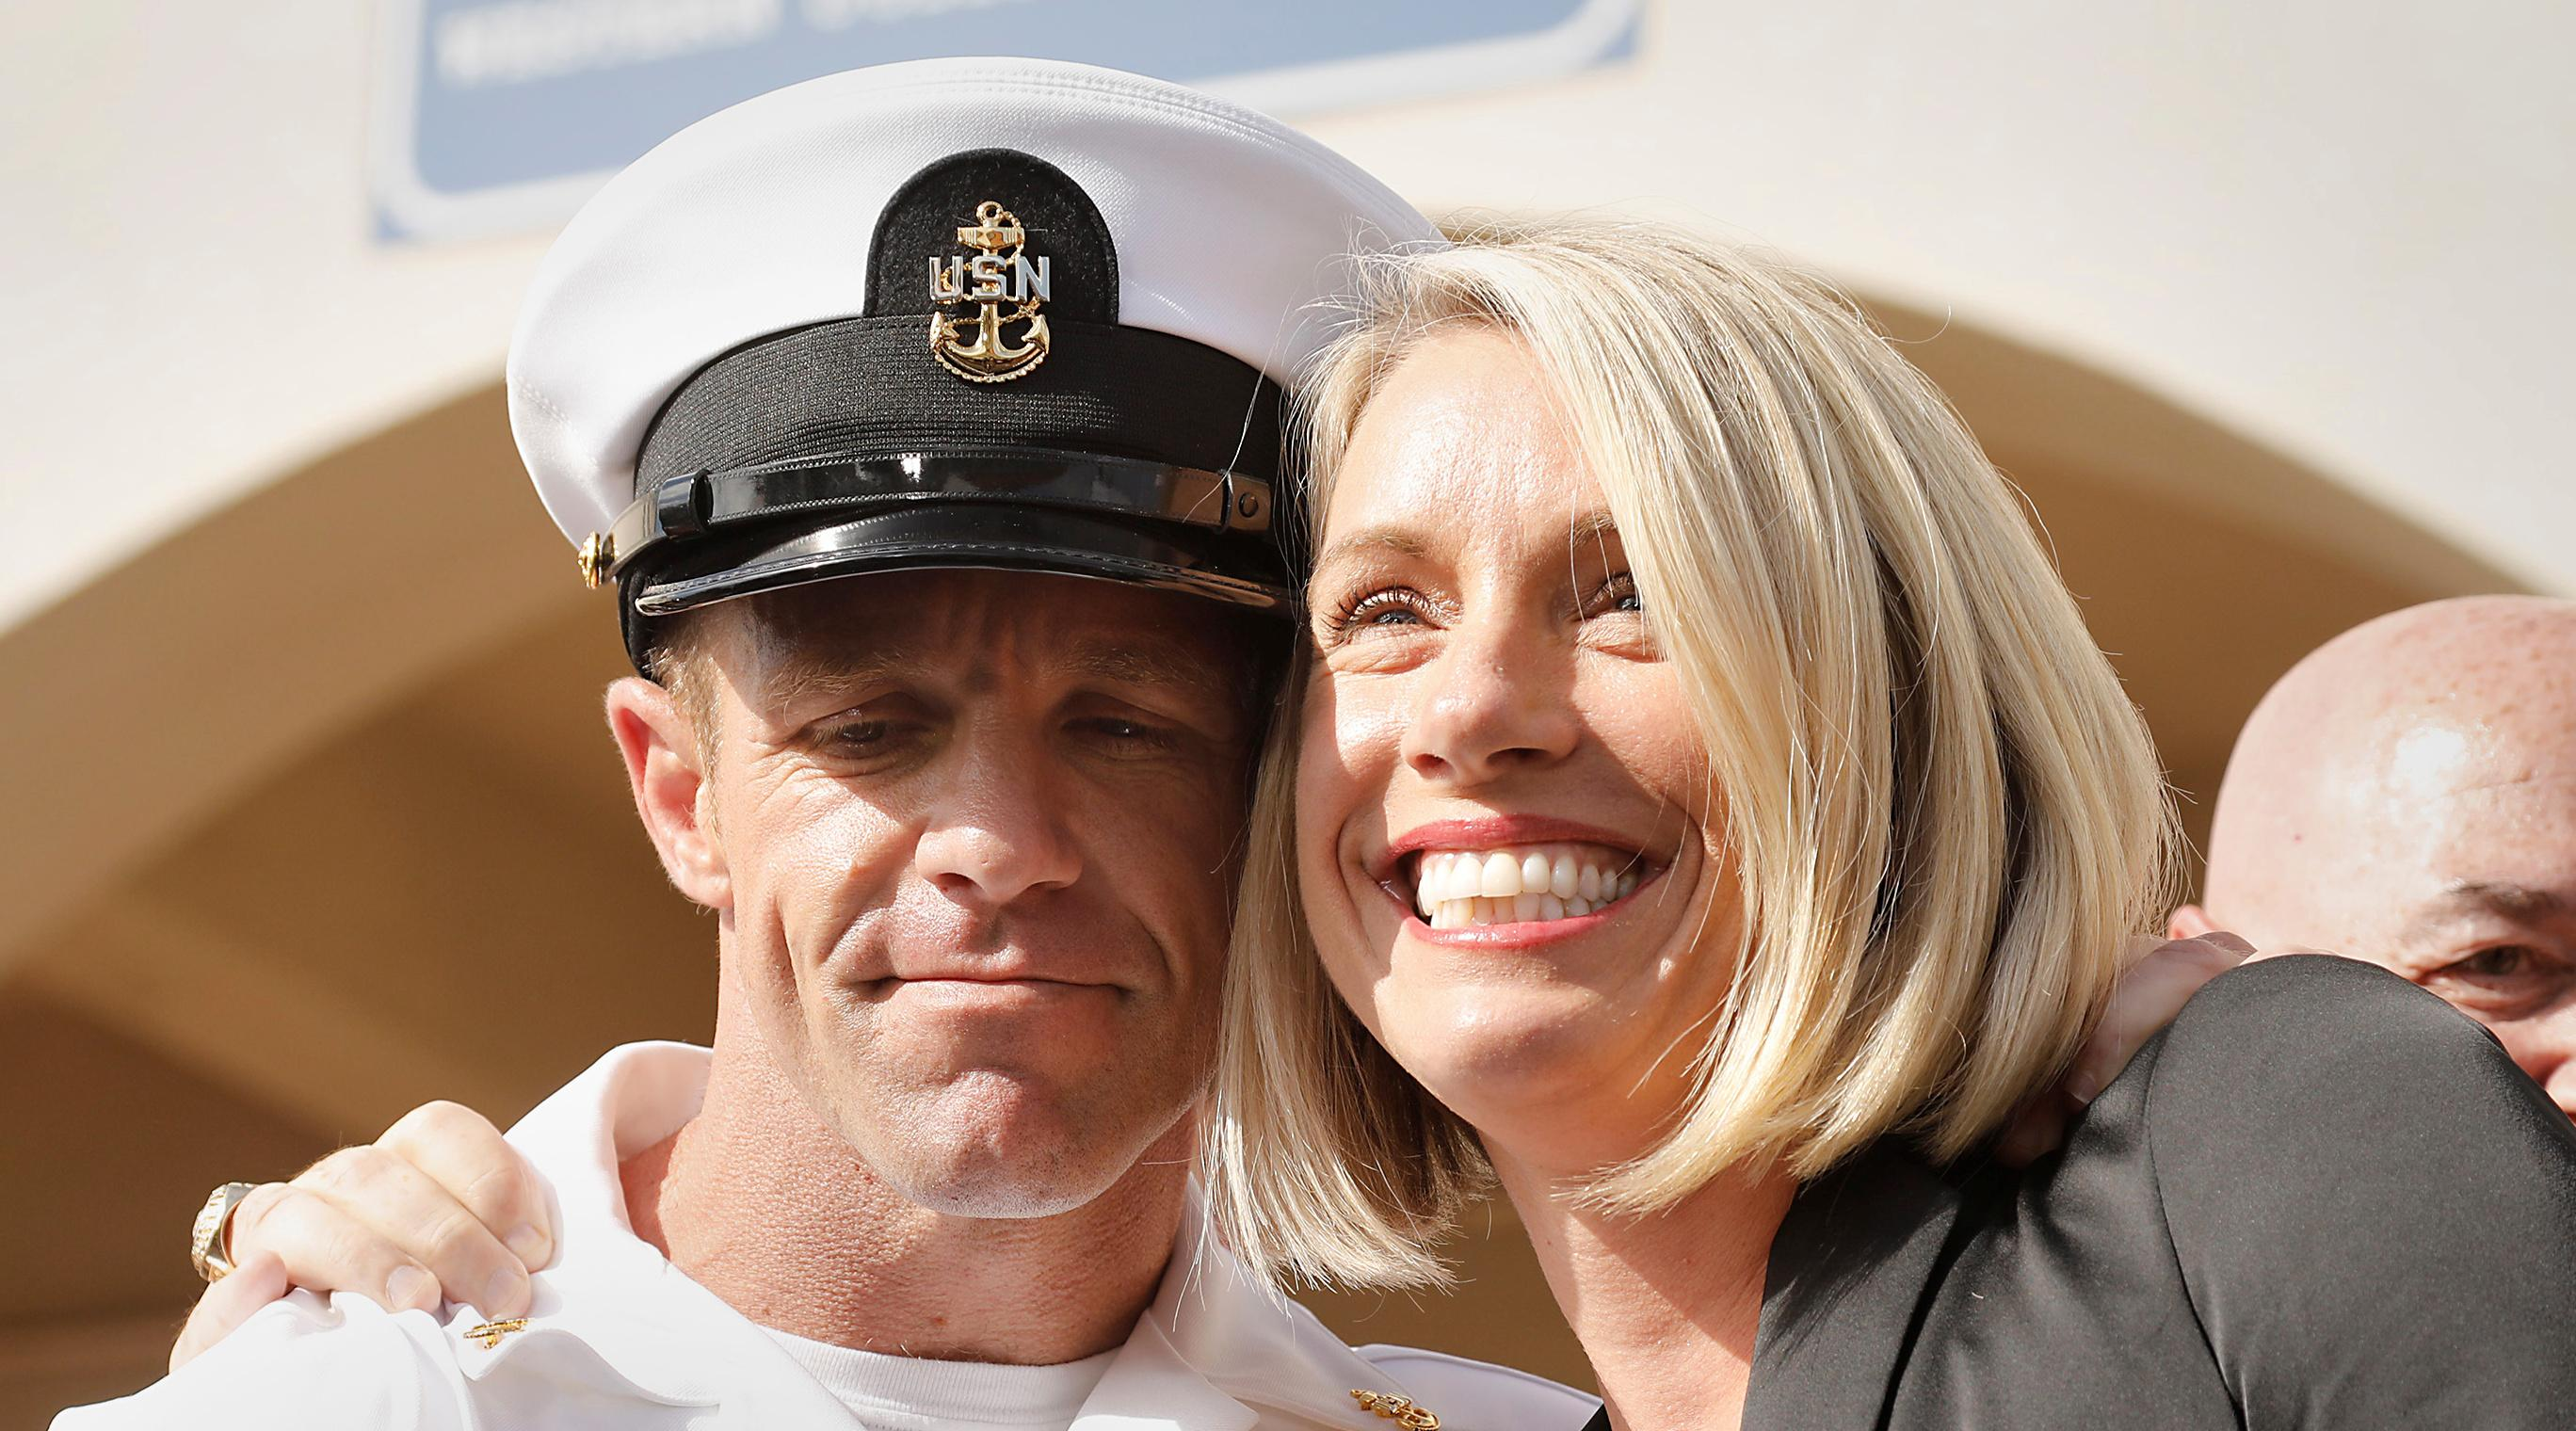 U.S. Navy SEAL acquitted of murder in war crimes trial